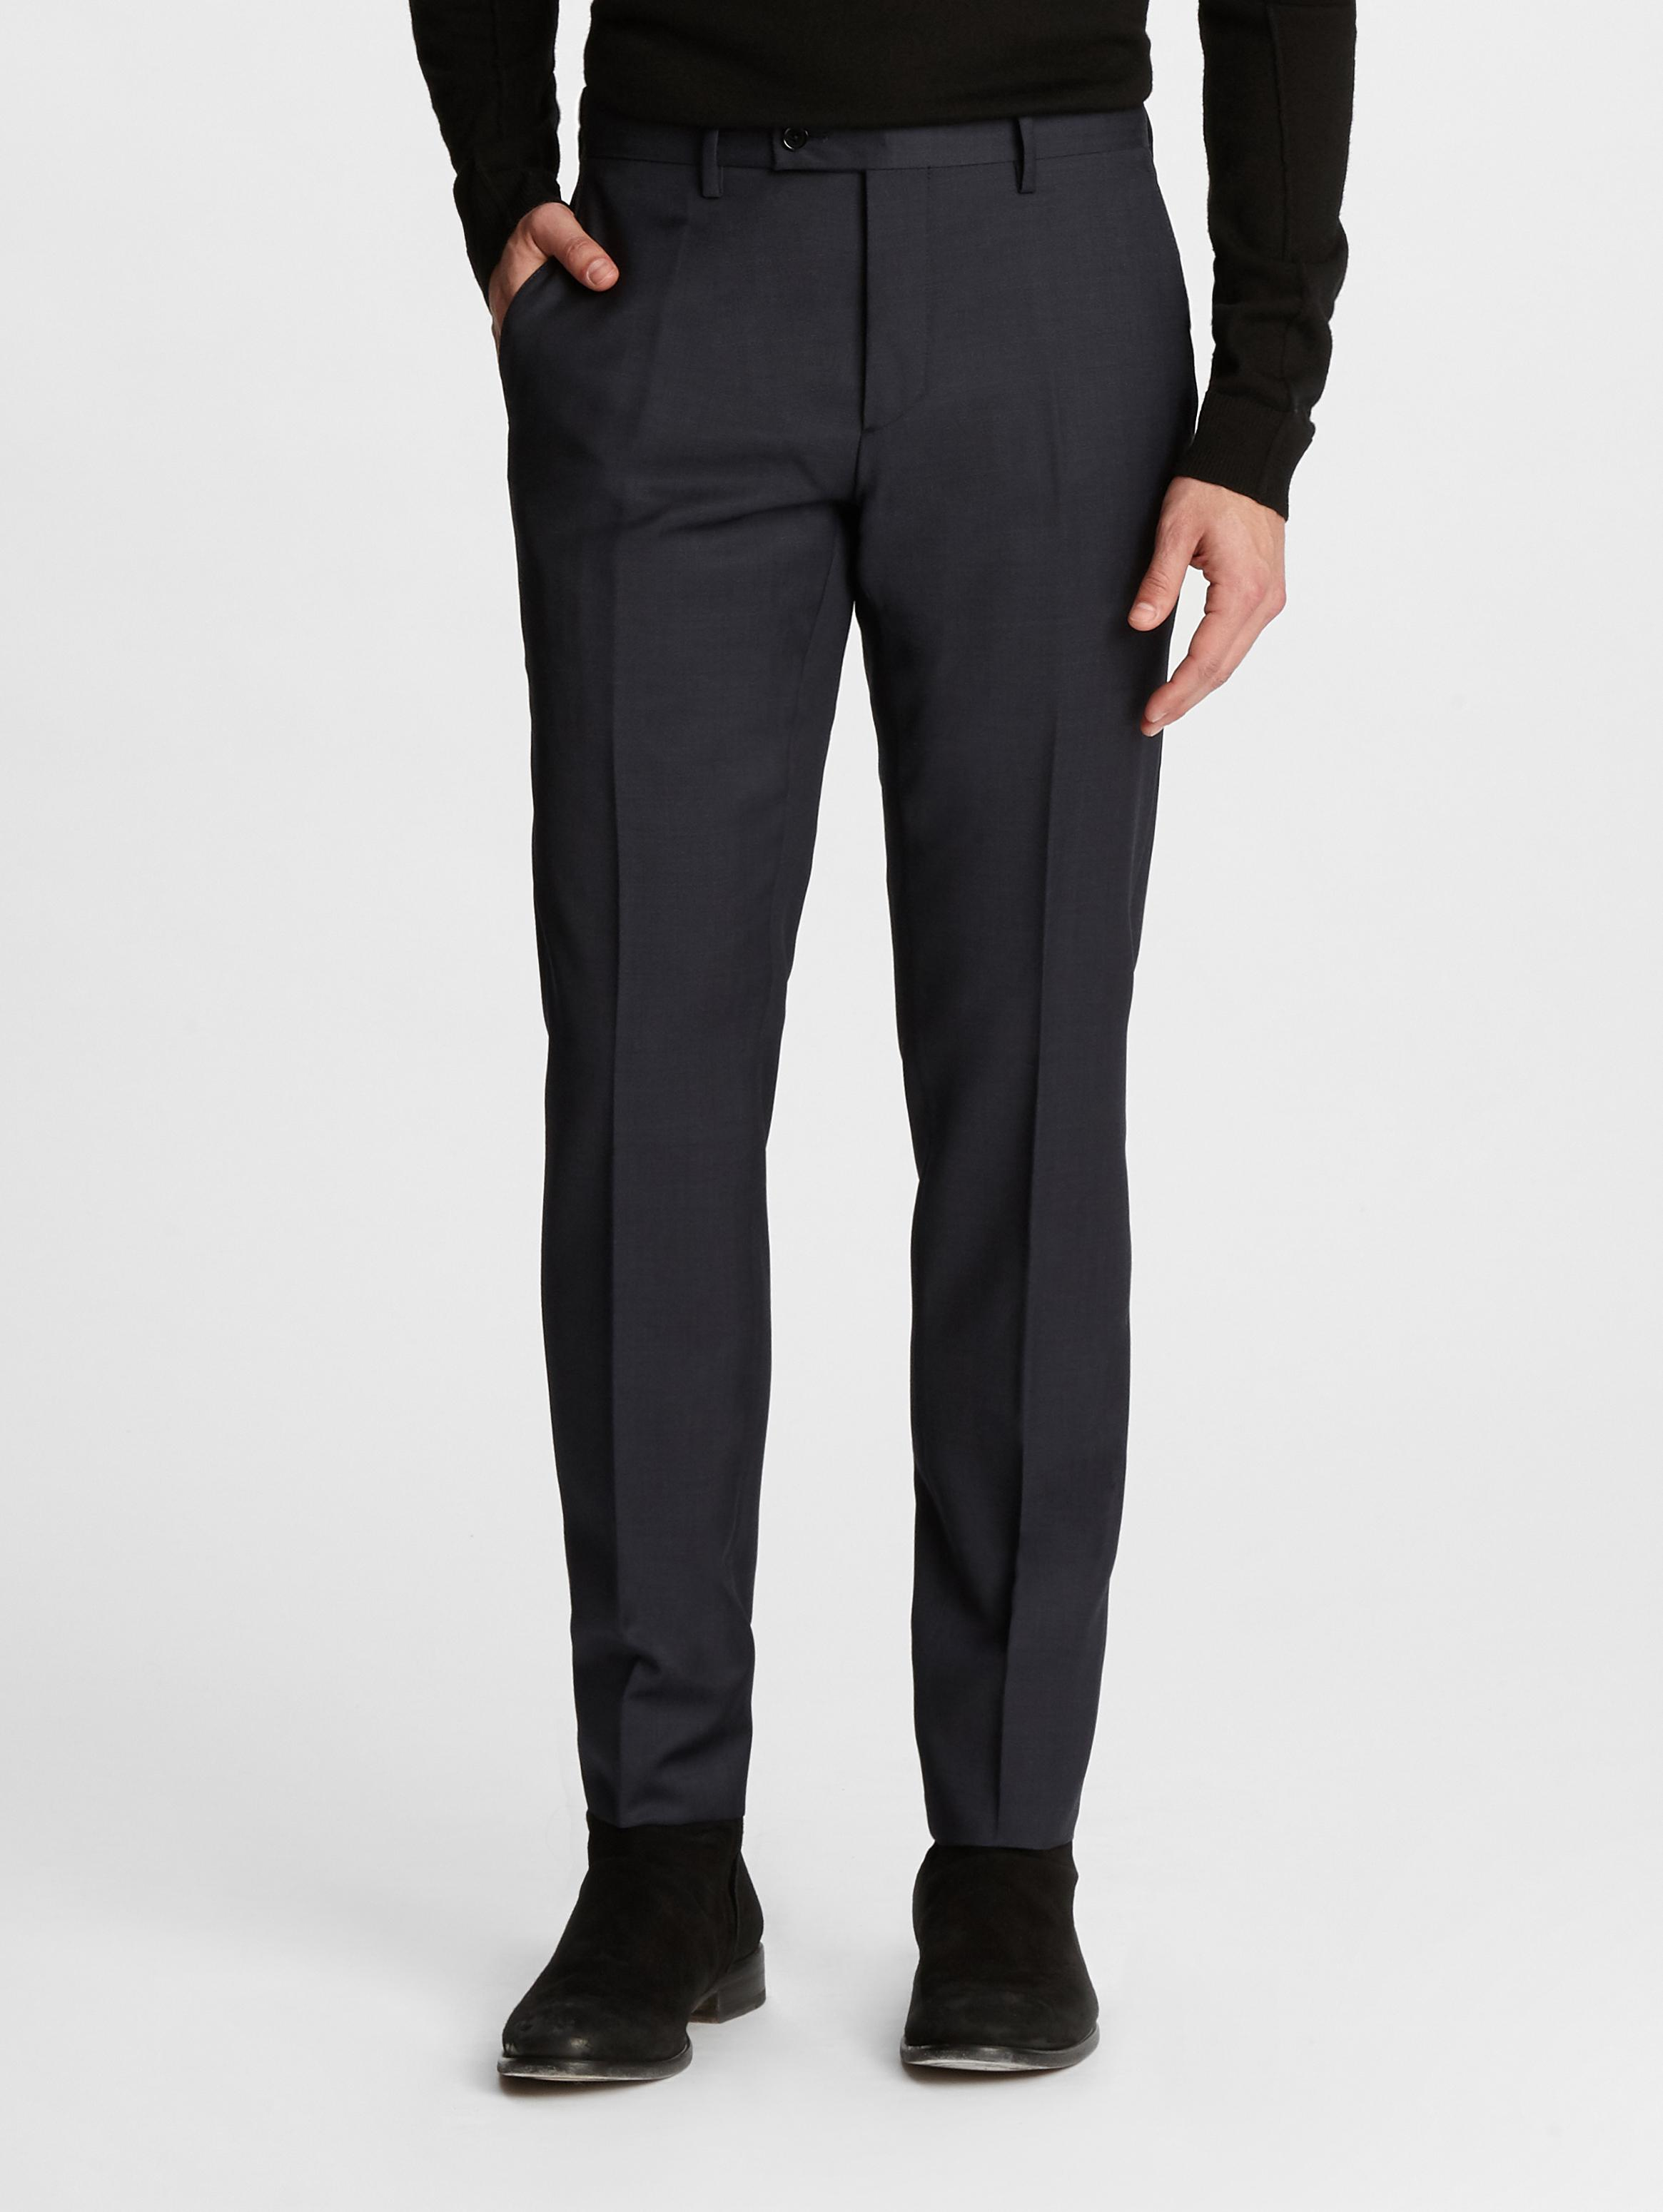 John Varvatos Jersey Trimmed Wool Slim Fit Trousers MKPUBW